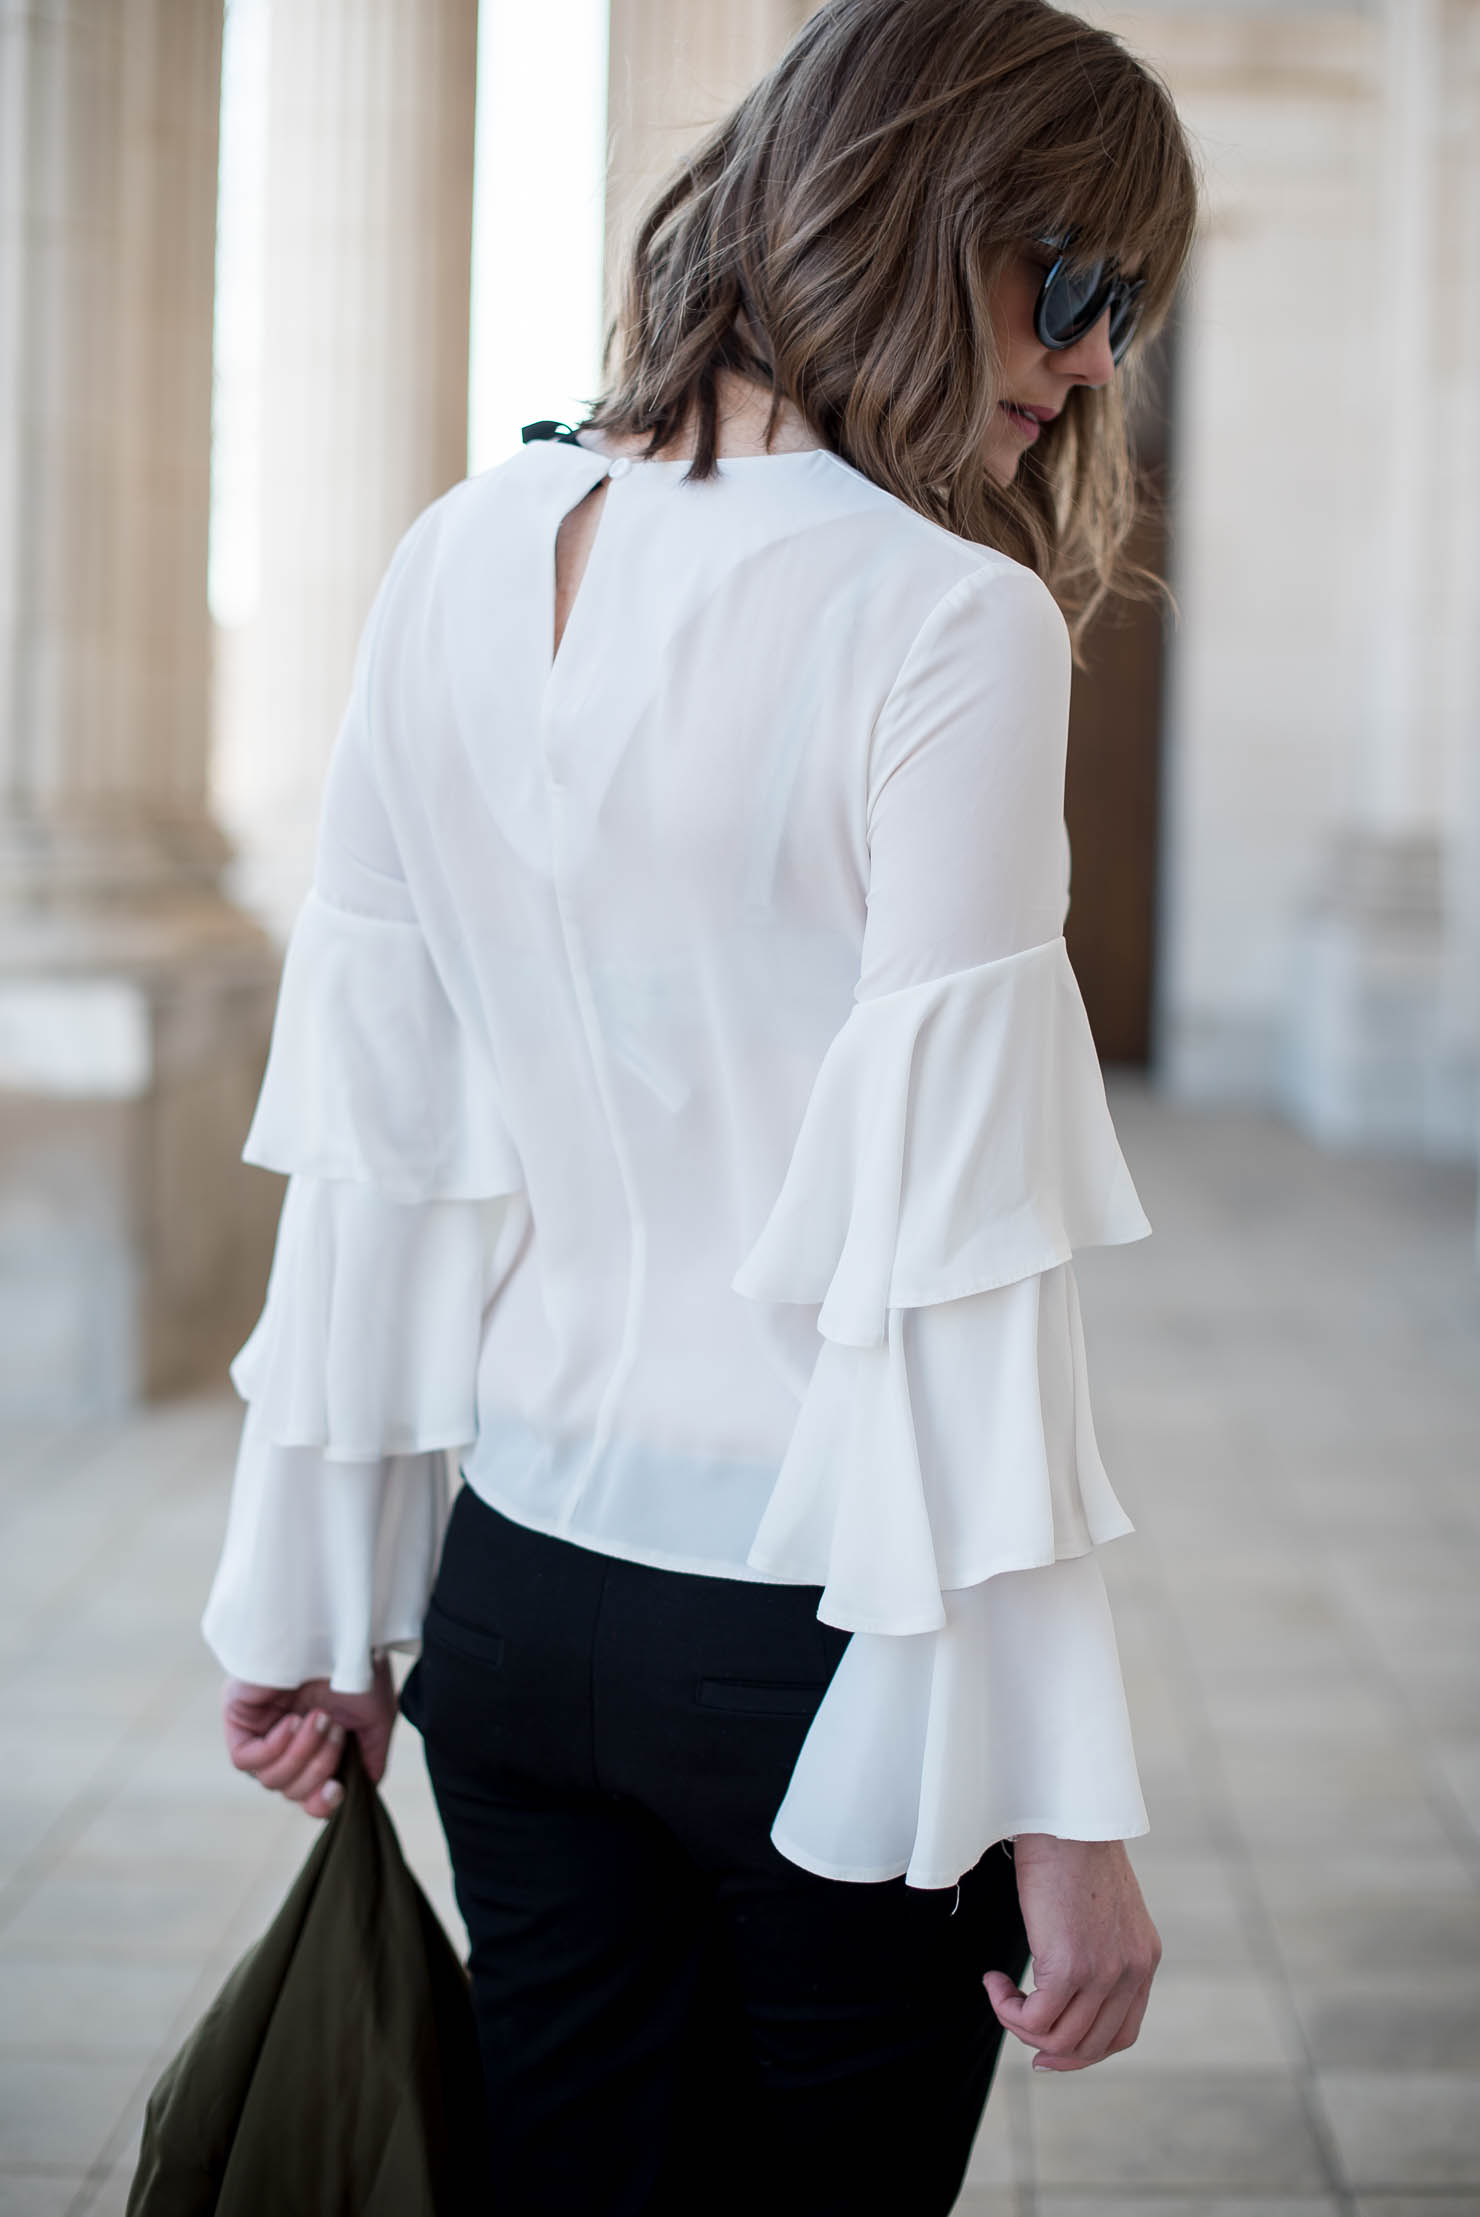 stying-a-ruffle-sleeve-blouse-springs-hottest-trend-bomber-jacket-spring-fashion-2017-zara-snakeskin-pumps-19